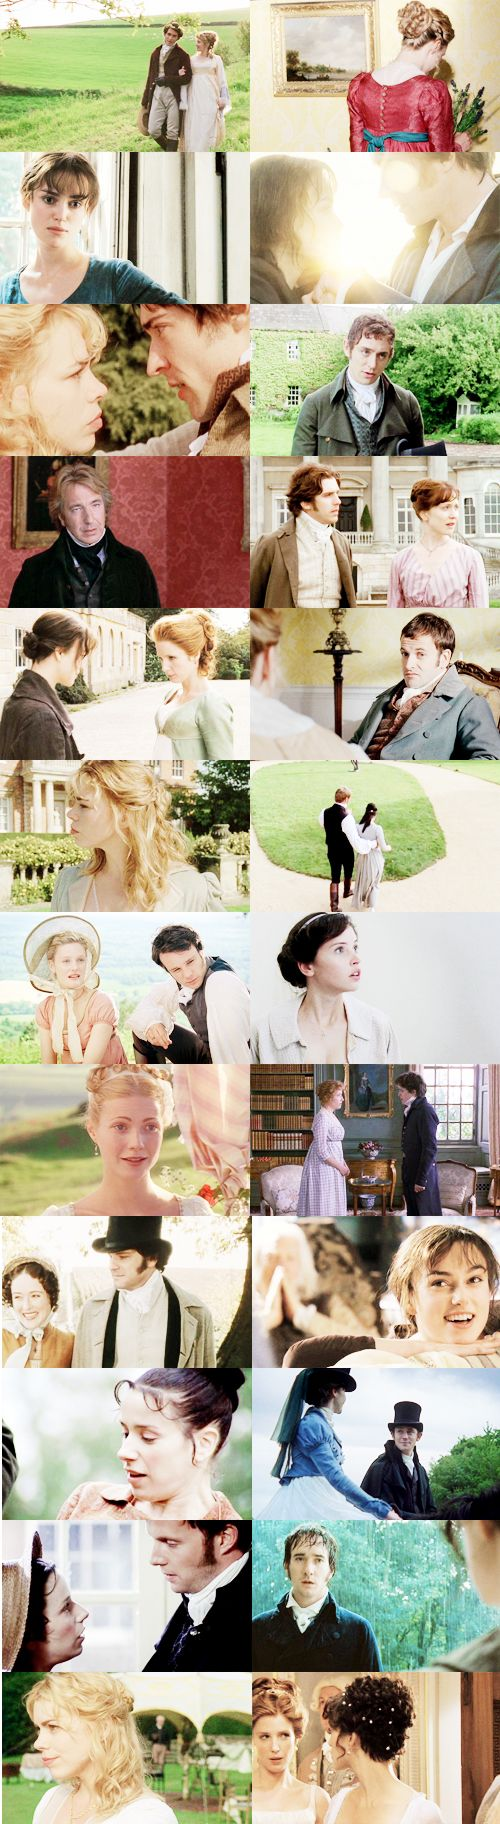 Jane Austen film adaptations. LOVE THIS